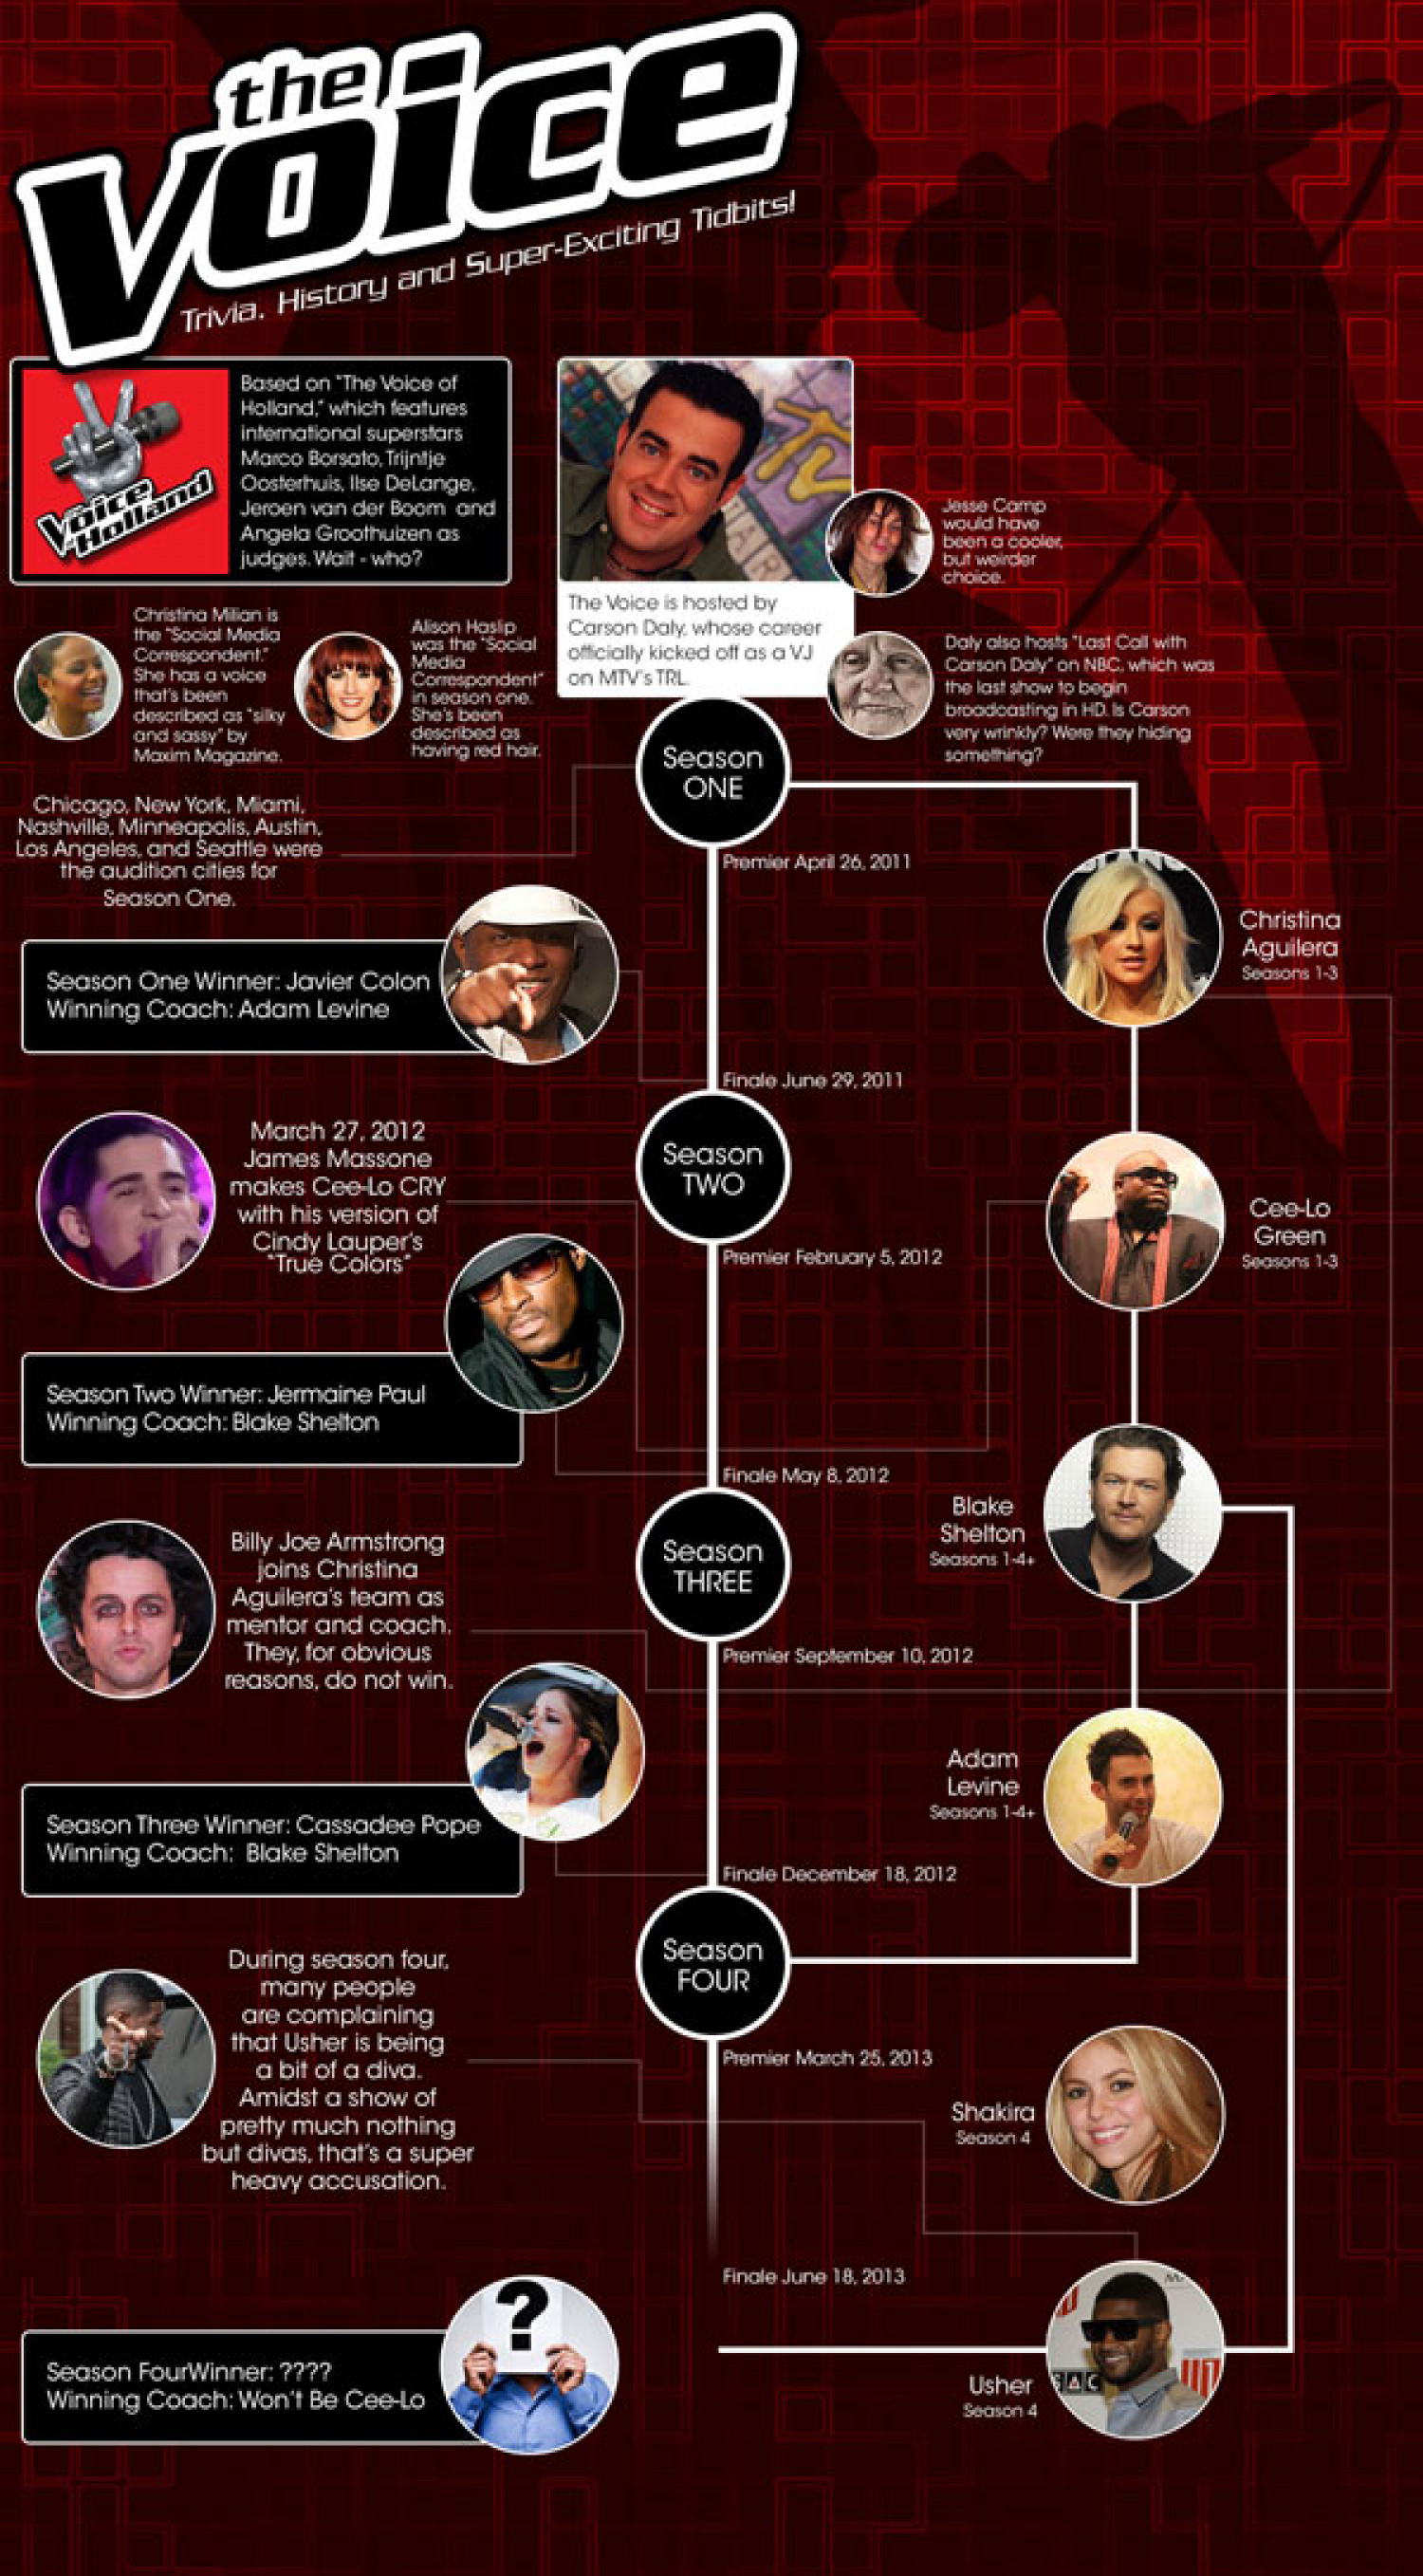 The Voice Television Show Infographic